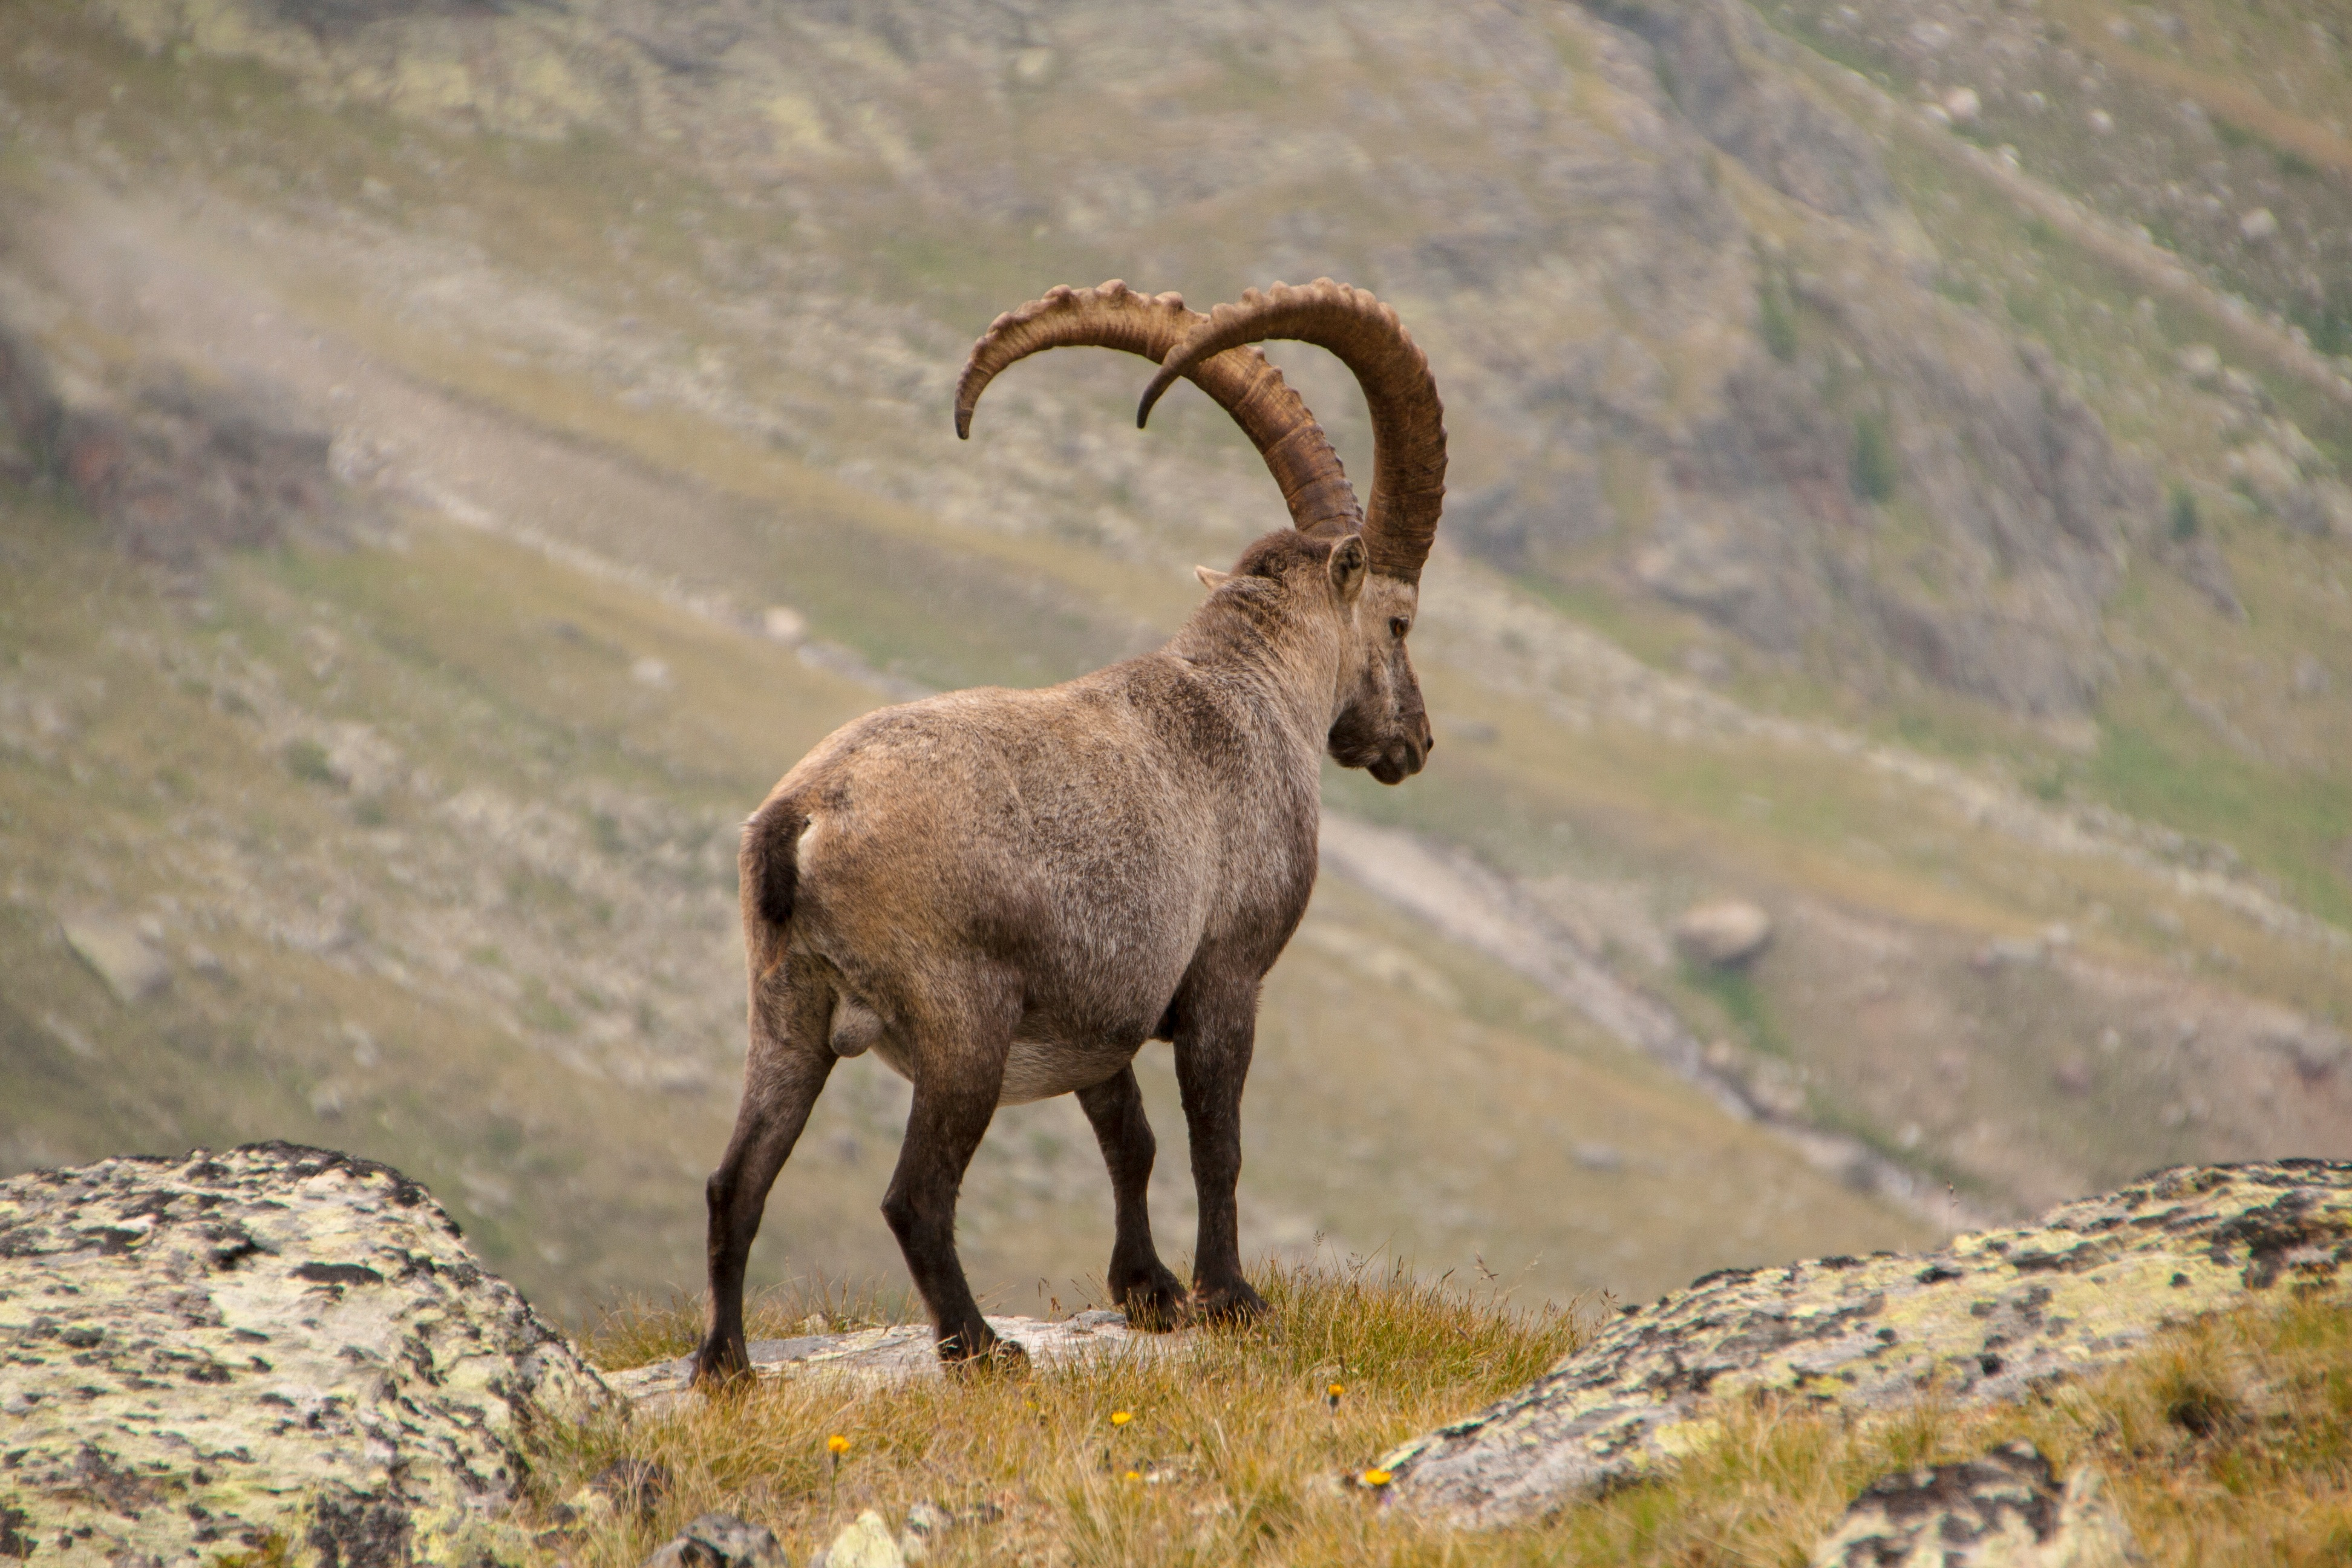 58538 download wallpaper Animals, Alpine Ibex, Alpine Mountain Goat, Horns, Mountains screensavers and pictures for free